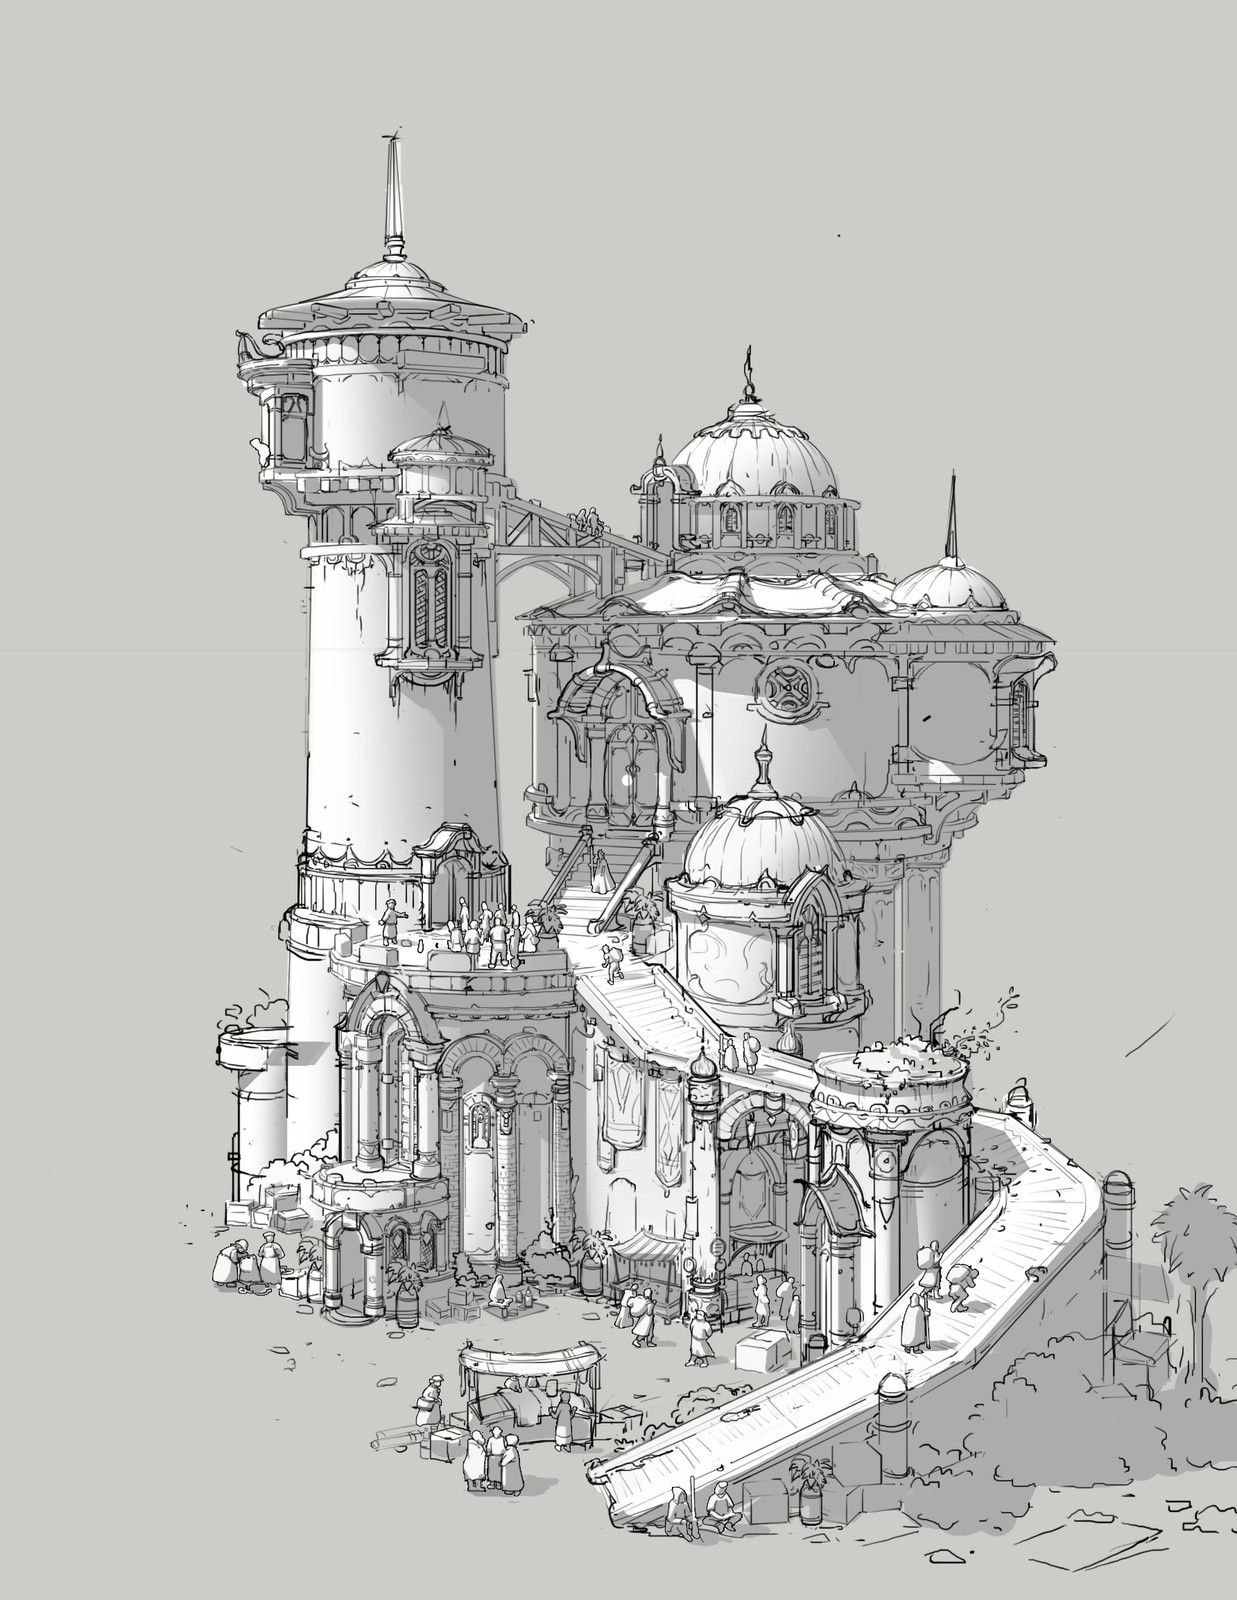 Pin by Renee on Fantasy Places Pinterest iConcepti iarti